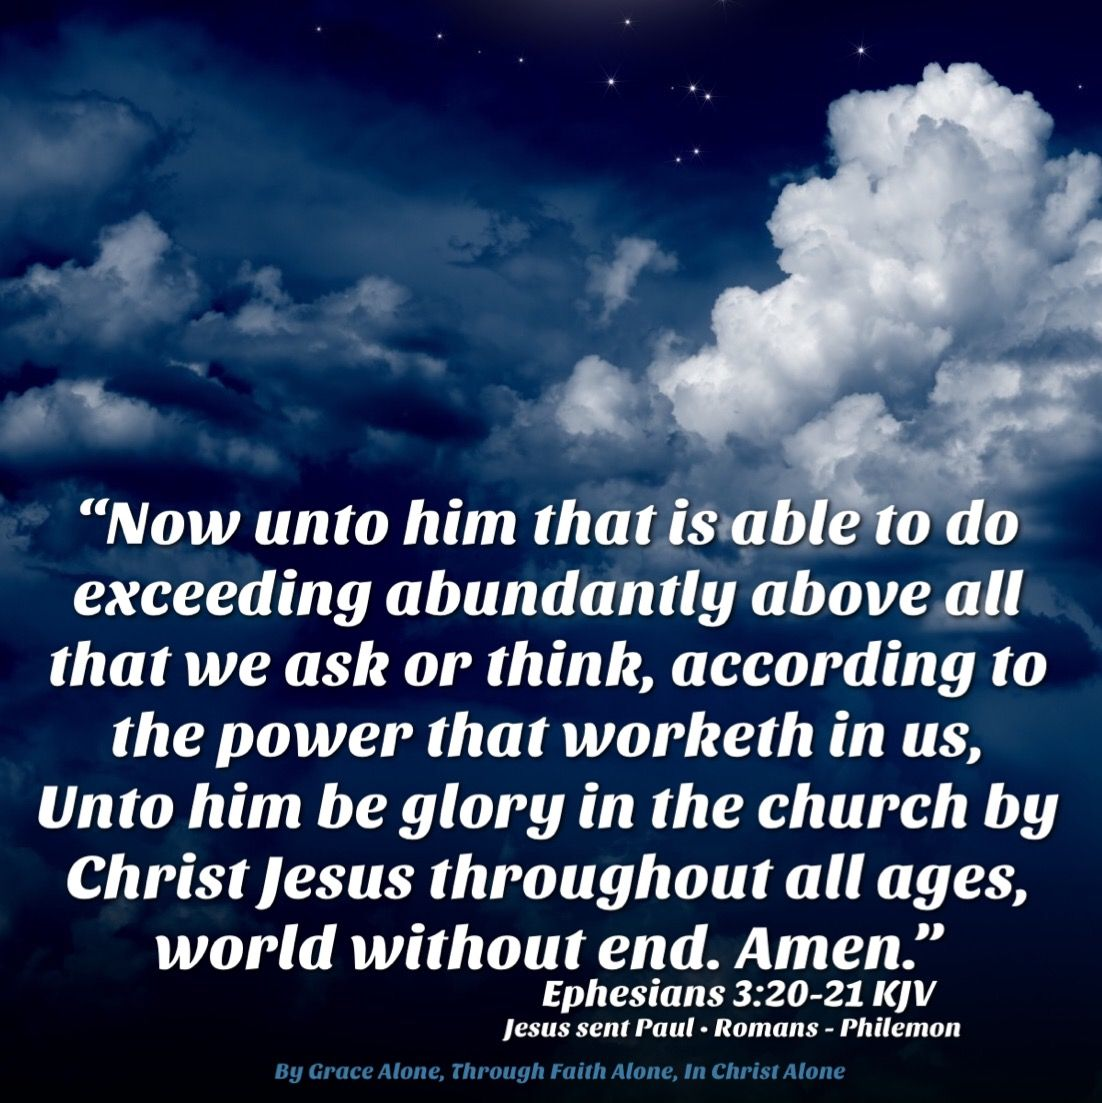 Pin by becky clay on GOD   Ephesians, Lord jesus christ, Bible scriptures